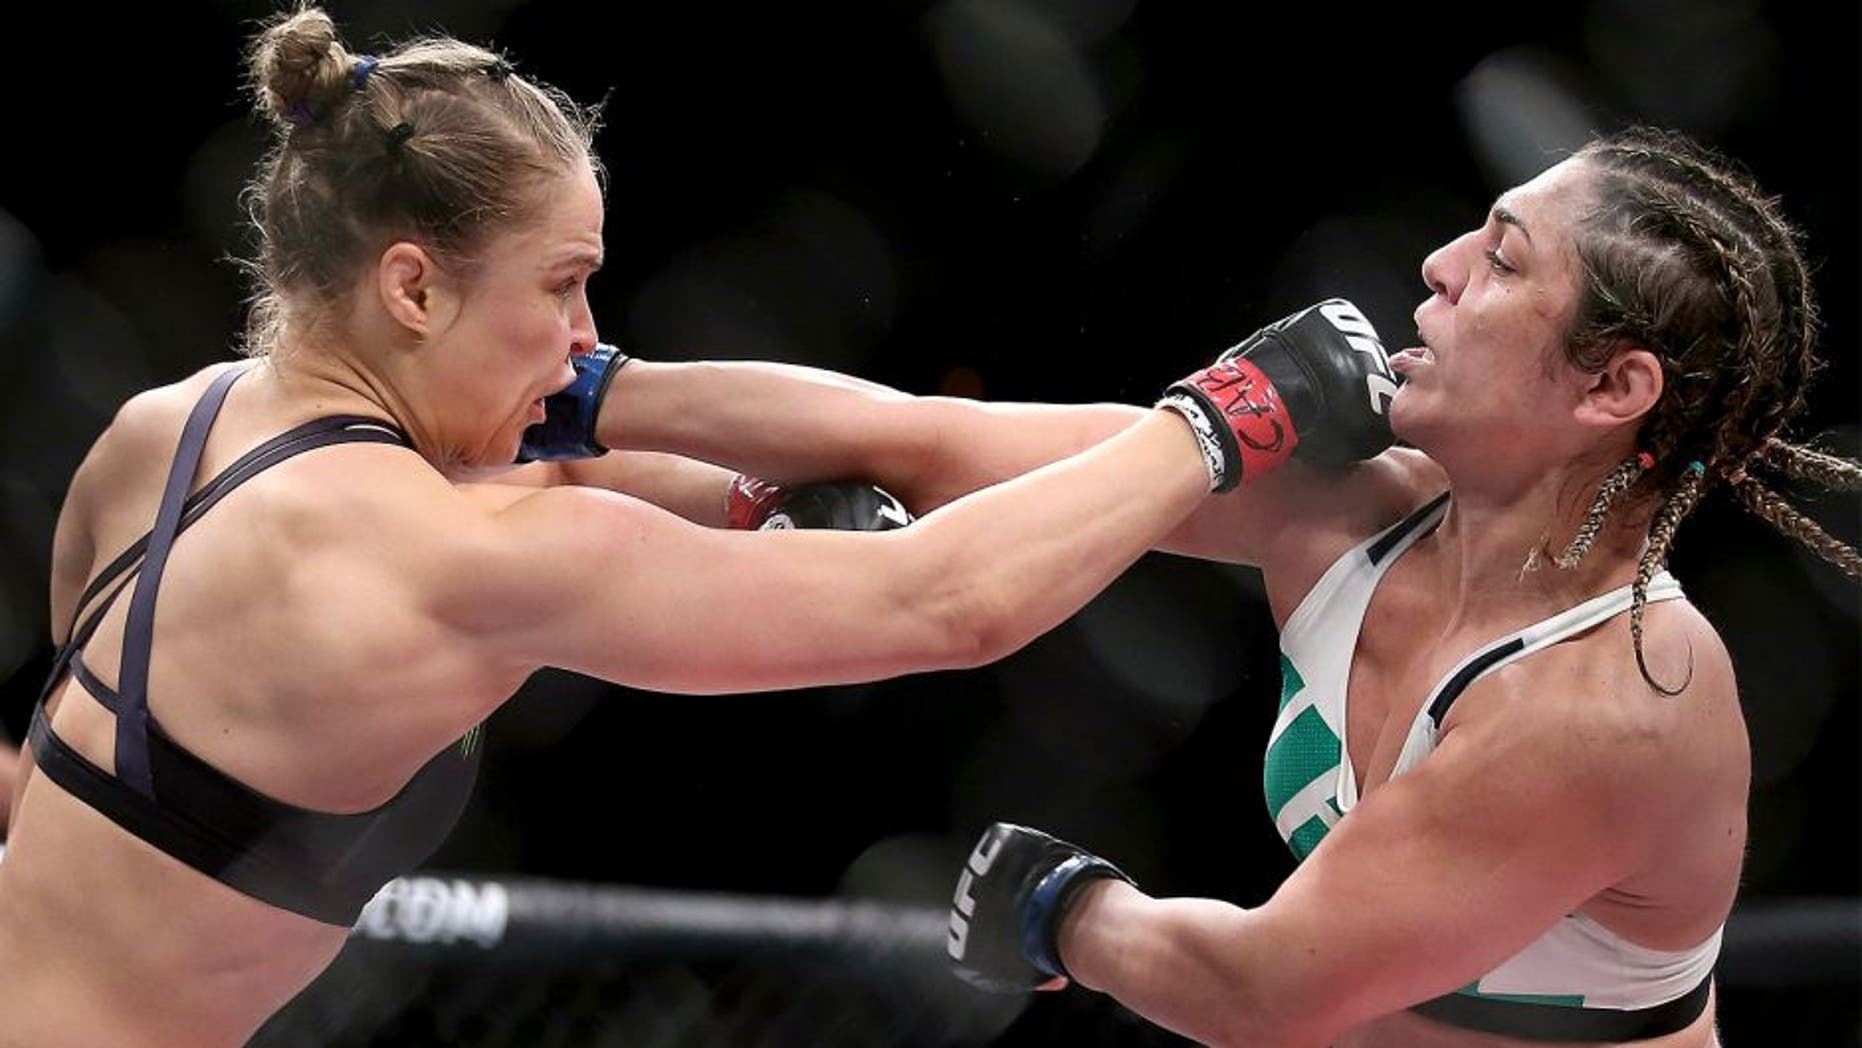 RIO DE JANEIRO, BRAZIL - AUGUST 01: Ronda Rousey of the United States (red) fights Bethe Correia of Brazi (blue) l in their bantamweight title fight during the UFC 190 Rousey v Correia at HSBC Arena on August 1, 2015 in Rio de Janeiro, Brazil. (Photo by Matthew Stockman/Getty Images)